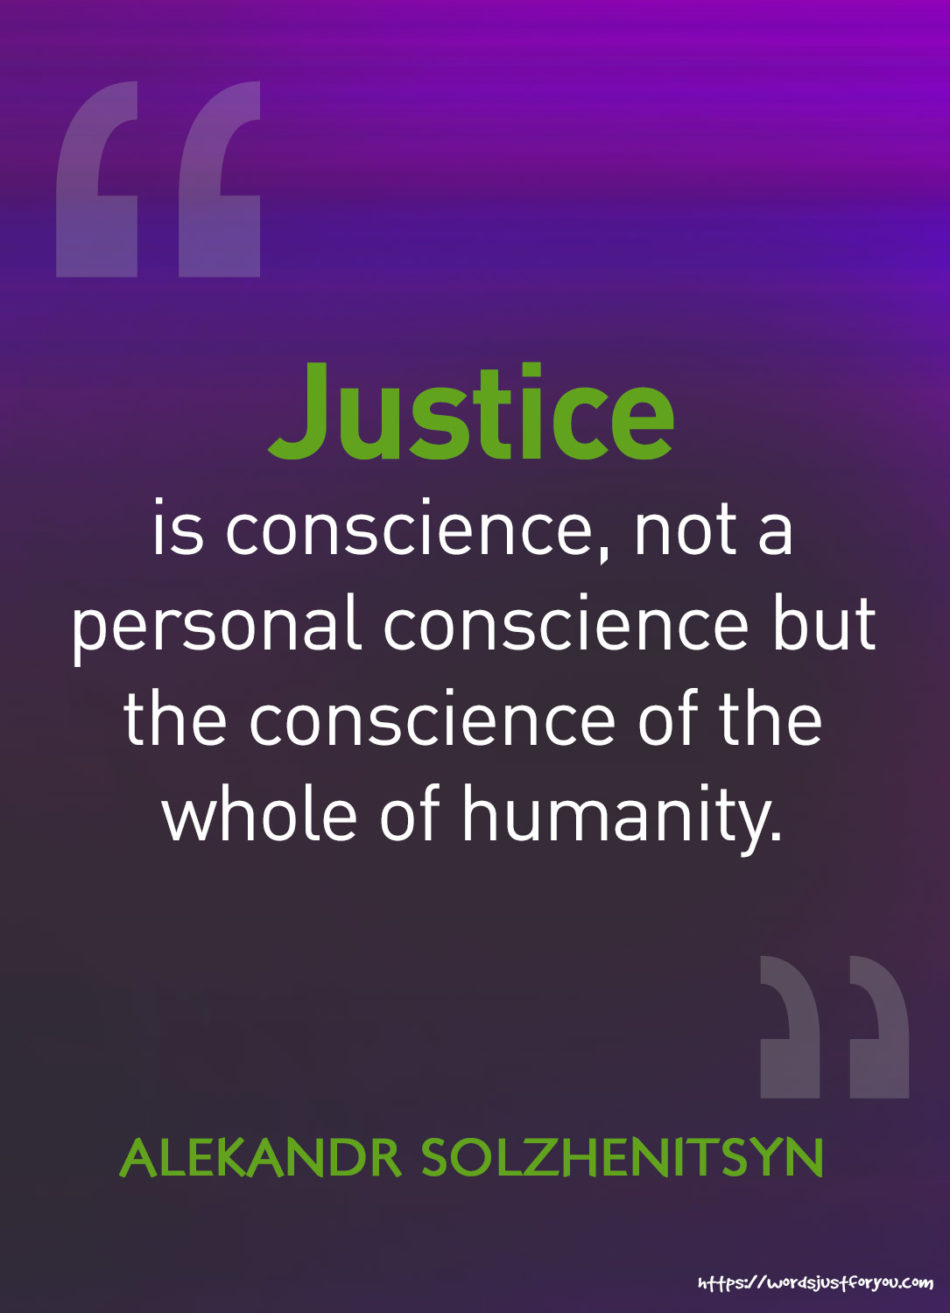 Famous Quotes by Alekandr Solzhenitsyn about Justice